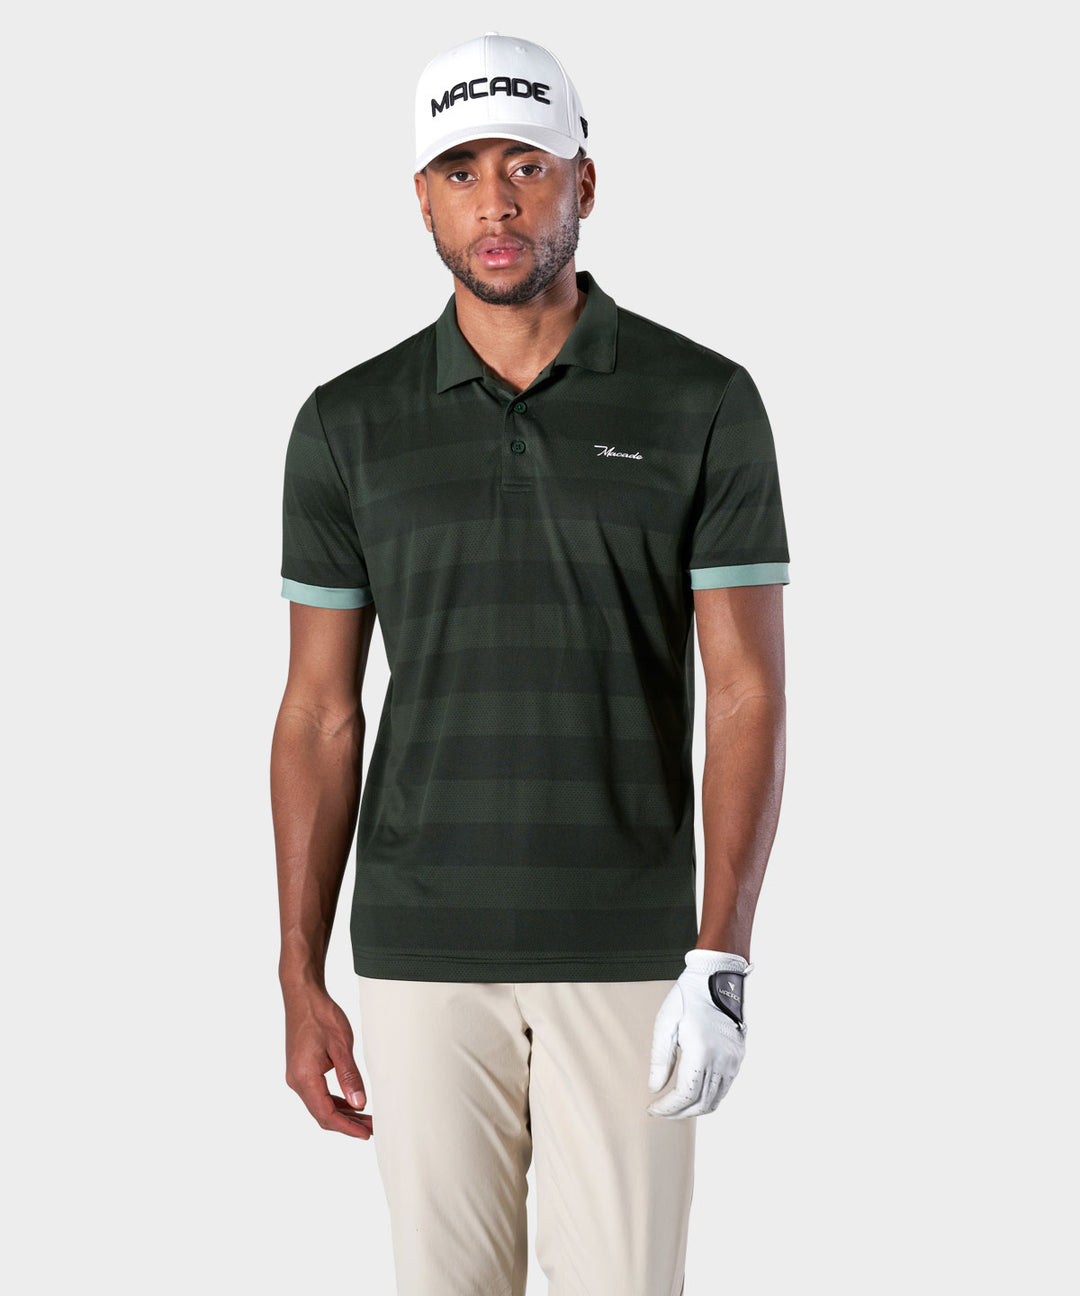 Green Tour Tech Polo Shirt